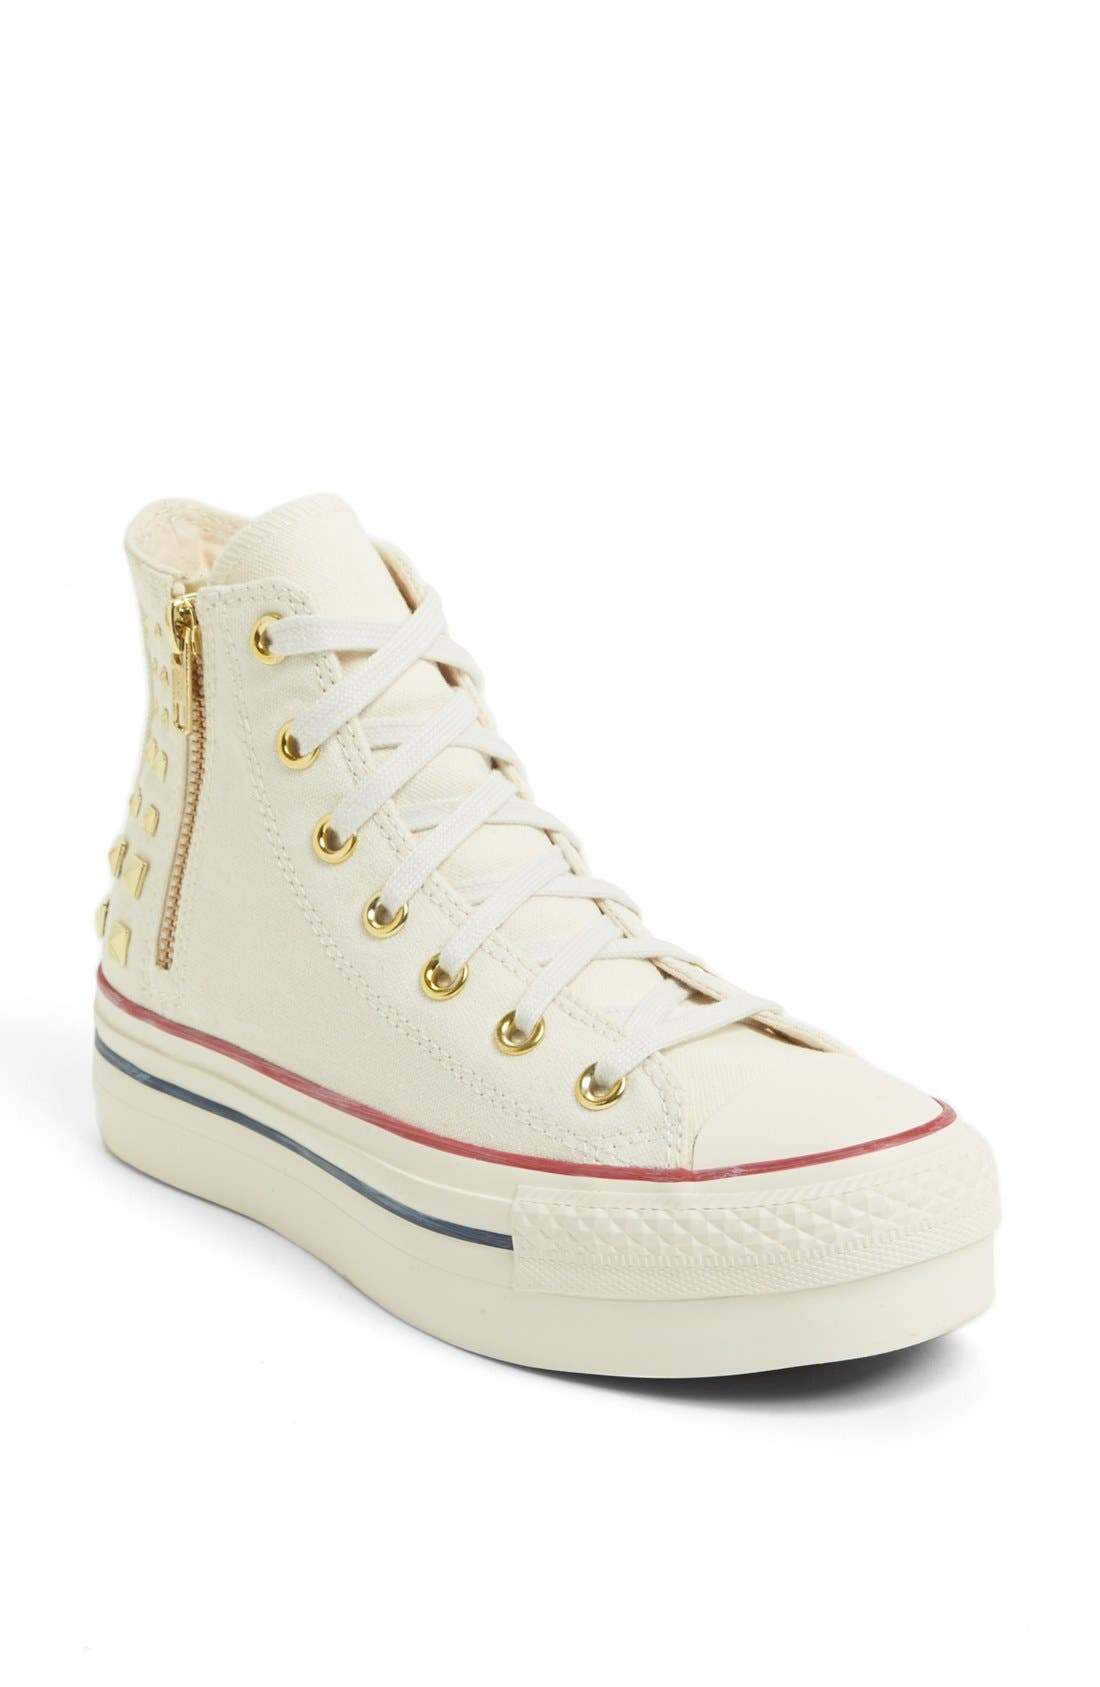 Alternate Image 1 Selected - Converse Chuck Taylor® All Star® Platform High Top Sneaker (Women)